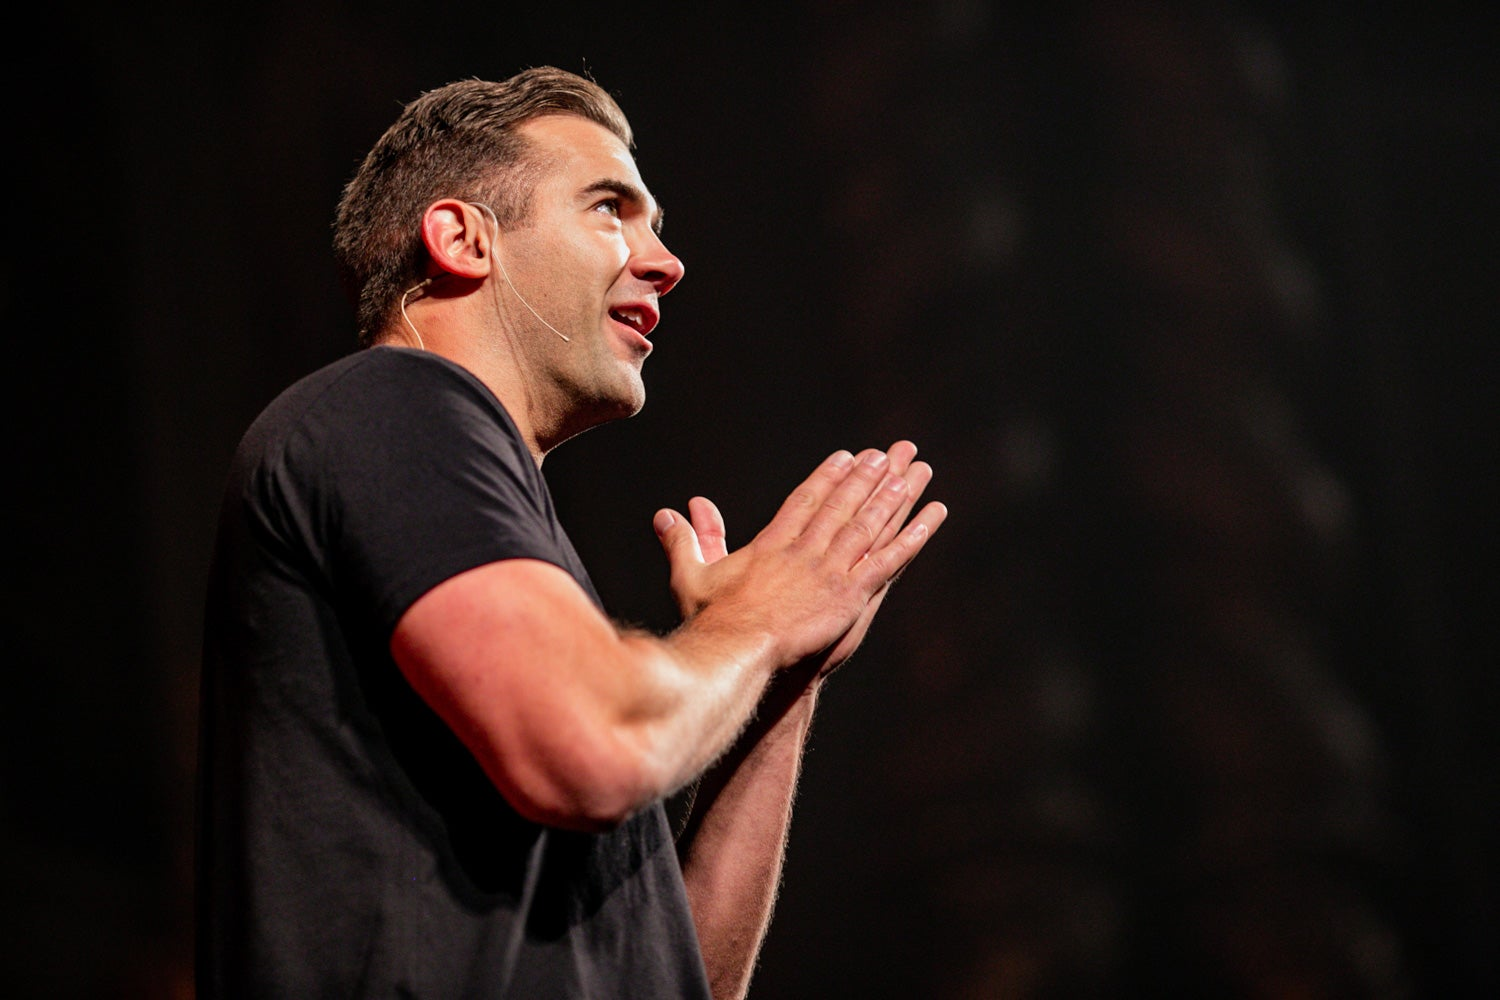 Lewis Howes on stage discussing his ideas about overcoming self doubt